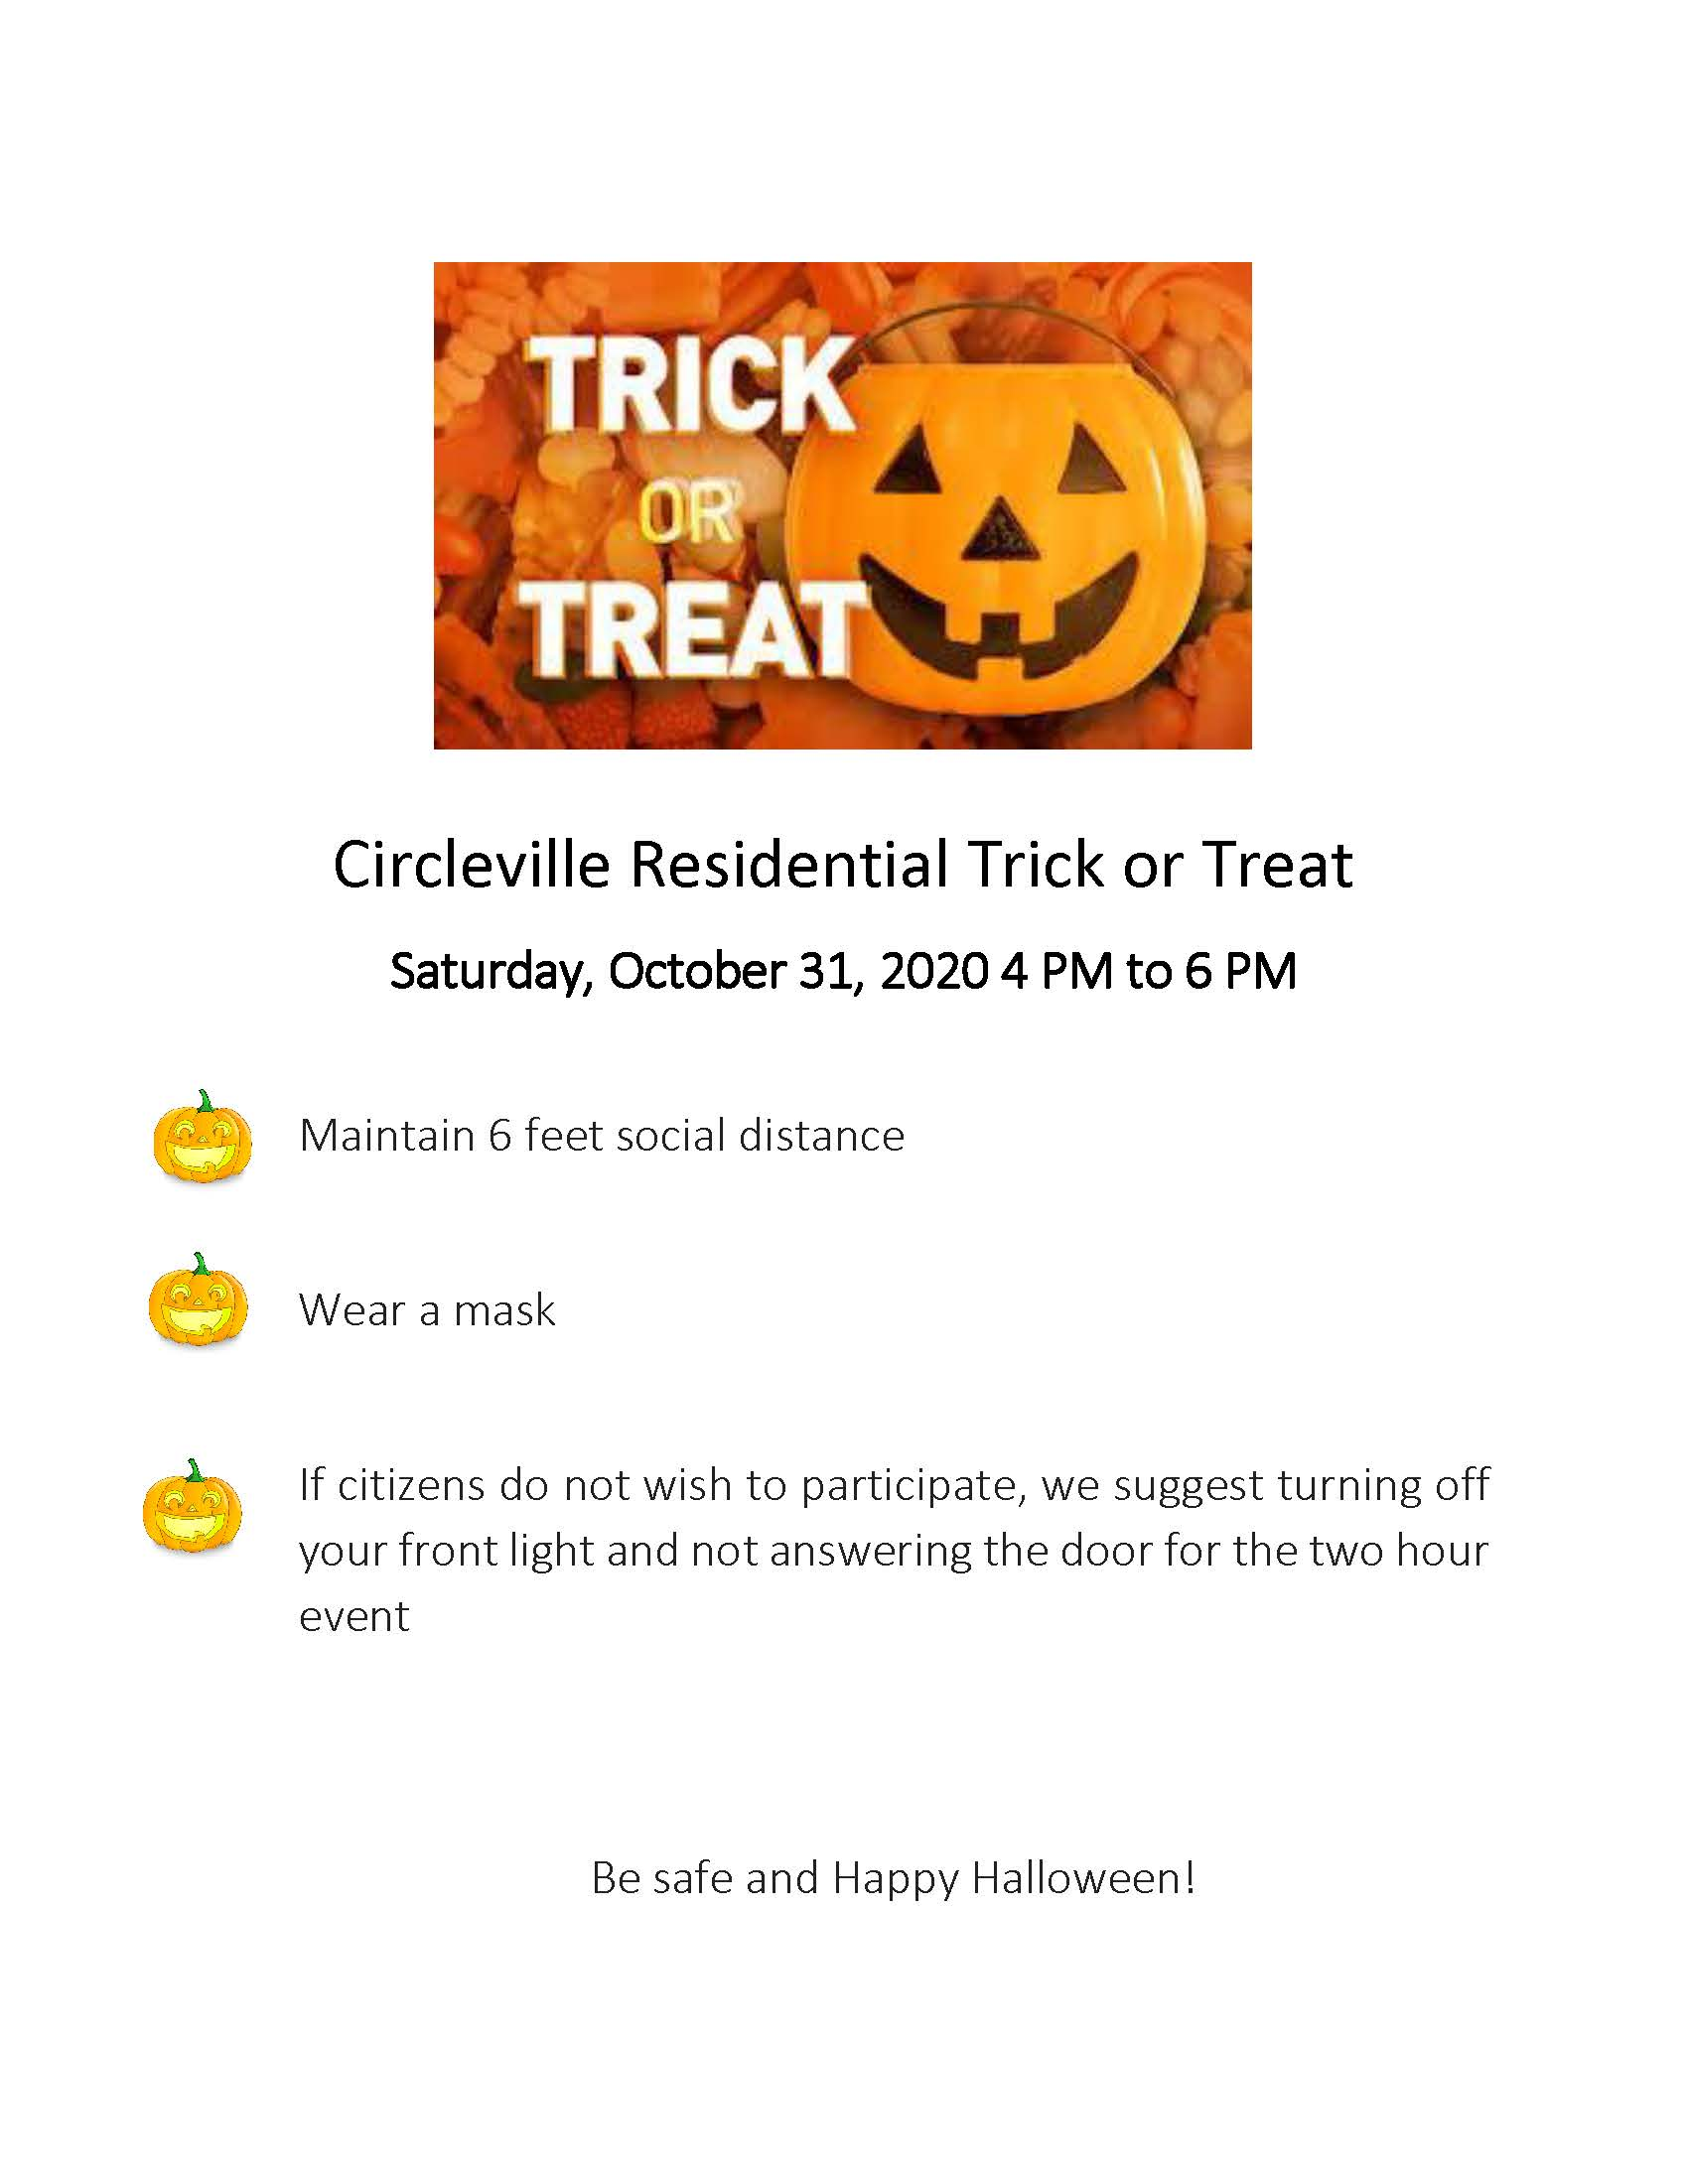 2020 Circleville Trick or Treat